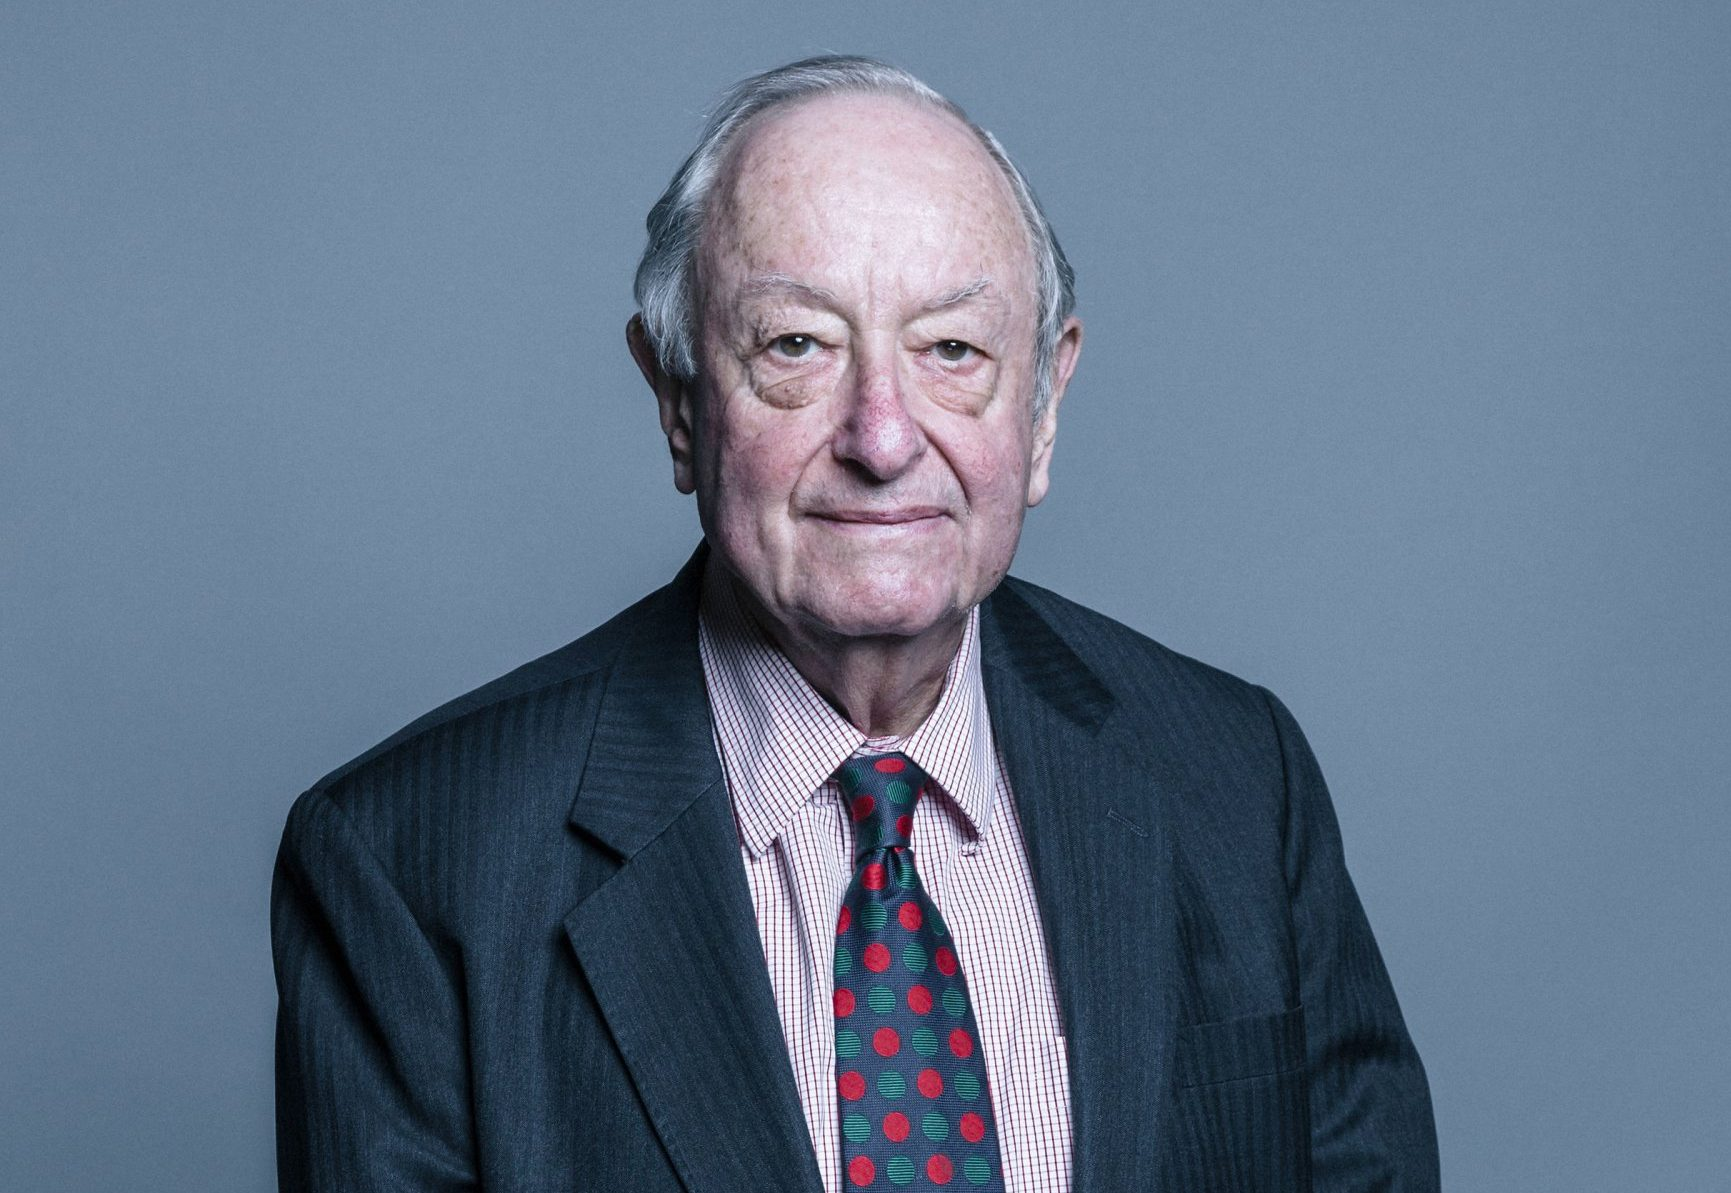 "UK Parliament undated handout photo of Lord Lester of Herne Hill. The Lords Privileges Committee has recommended that Lord Lester be suspended following a finding that he sexually harassed a complainant and offered her ""corrupt inducements to sleep with him"". PRESS ASSOCIATION Photo. Issue date: Monday November 12, 2018. See PA story A POLITICS. Photo credit should read: Chris McAndrew/UK Parliament/PA Wire NOTE TO EDITORS: This handout photo may only be used in for editorial reporting purposes for the contemporaneous illustration of events, things or the people in the image or facts mentioned in the caption. Reuse of the picture may require further permission from the copyright holder."